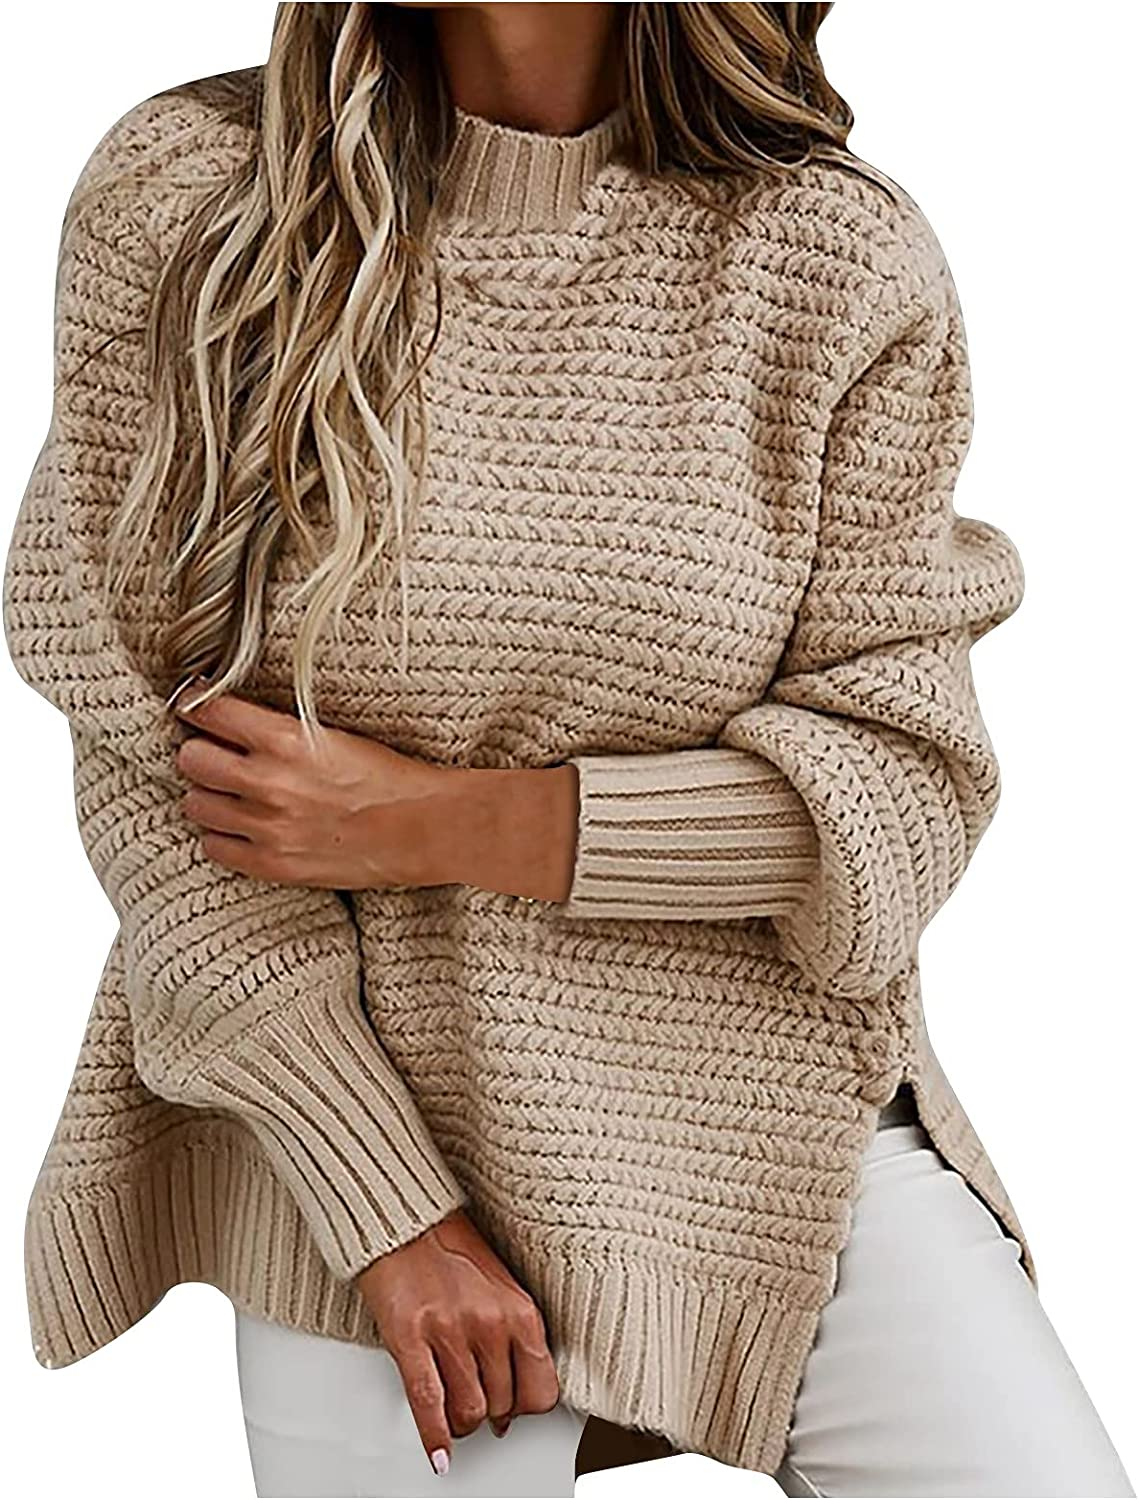 Women's Pullover Sweater Half High Neck Loose Solid Color Thick Needle Side Slit Knitted Long Sleeve Tops